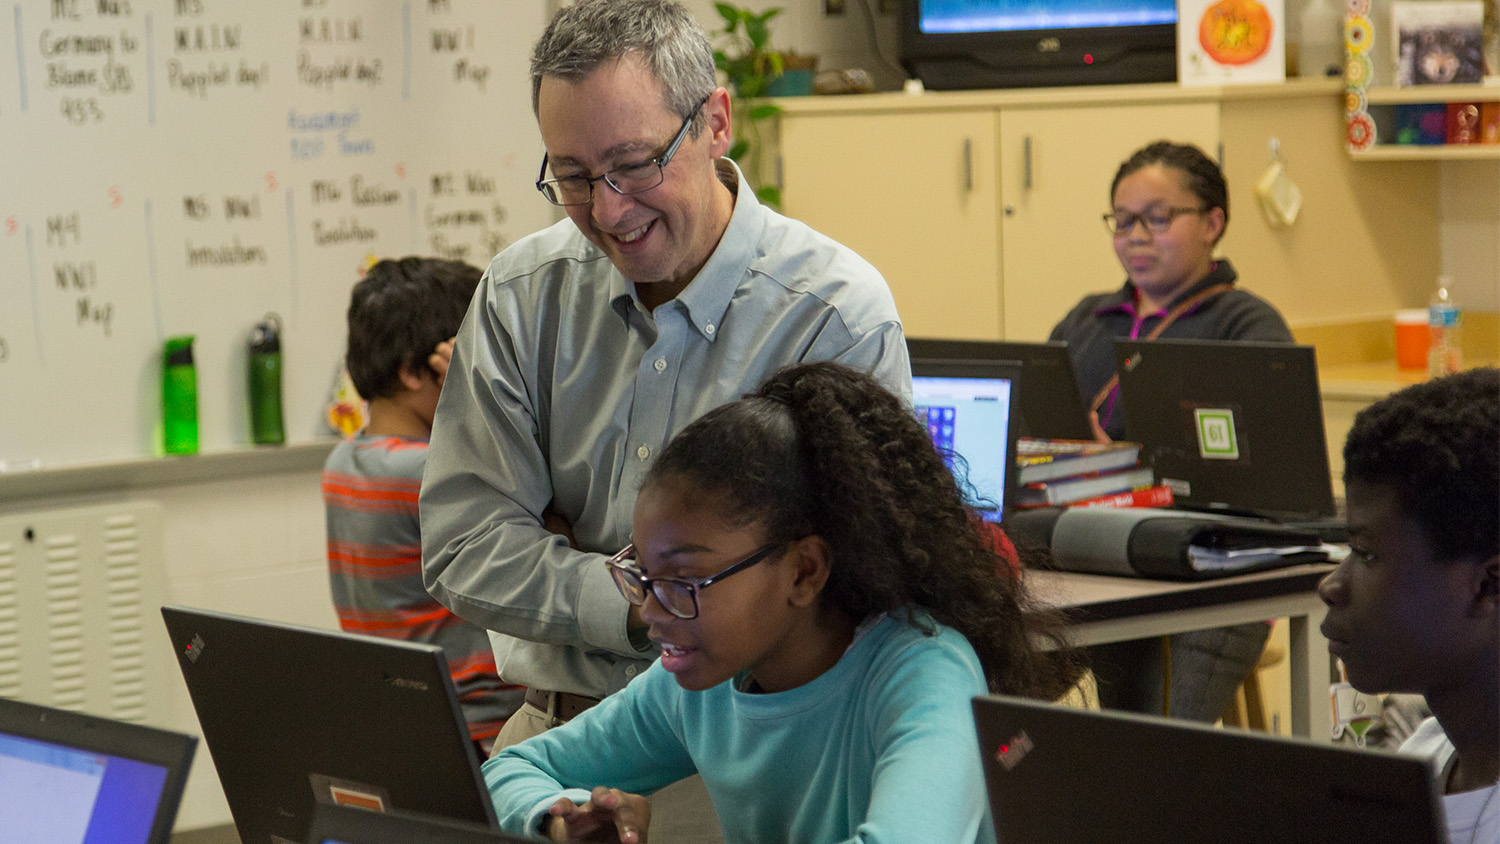 NCState College of Education Professor and Friday Institute Fellow Eric Wiebe works with students at Centennial Campus Middle School.